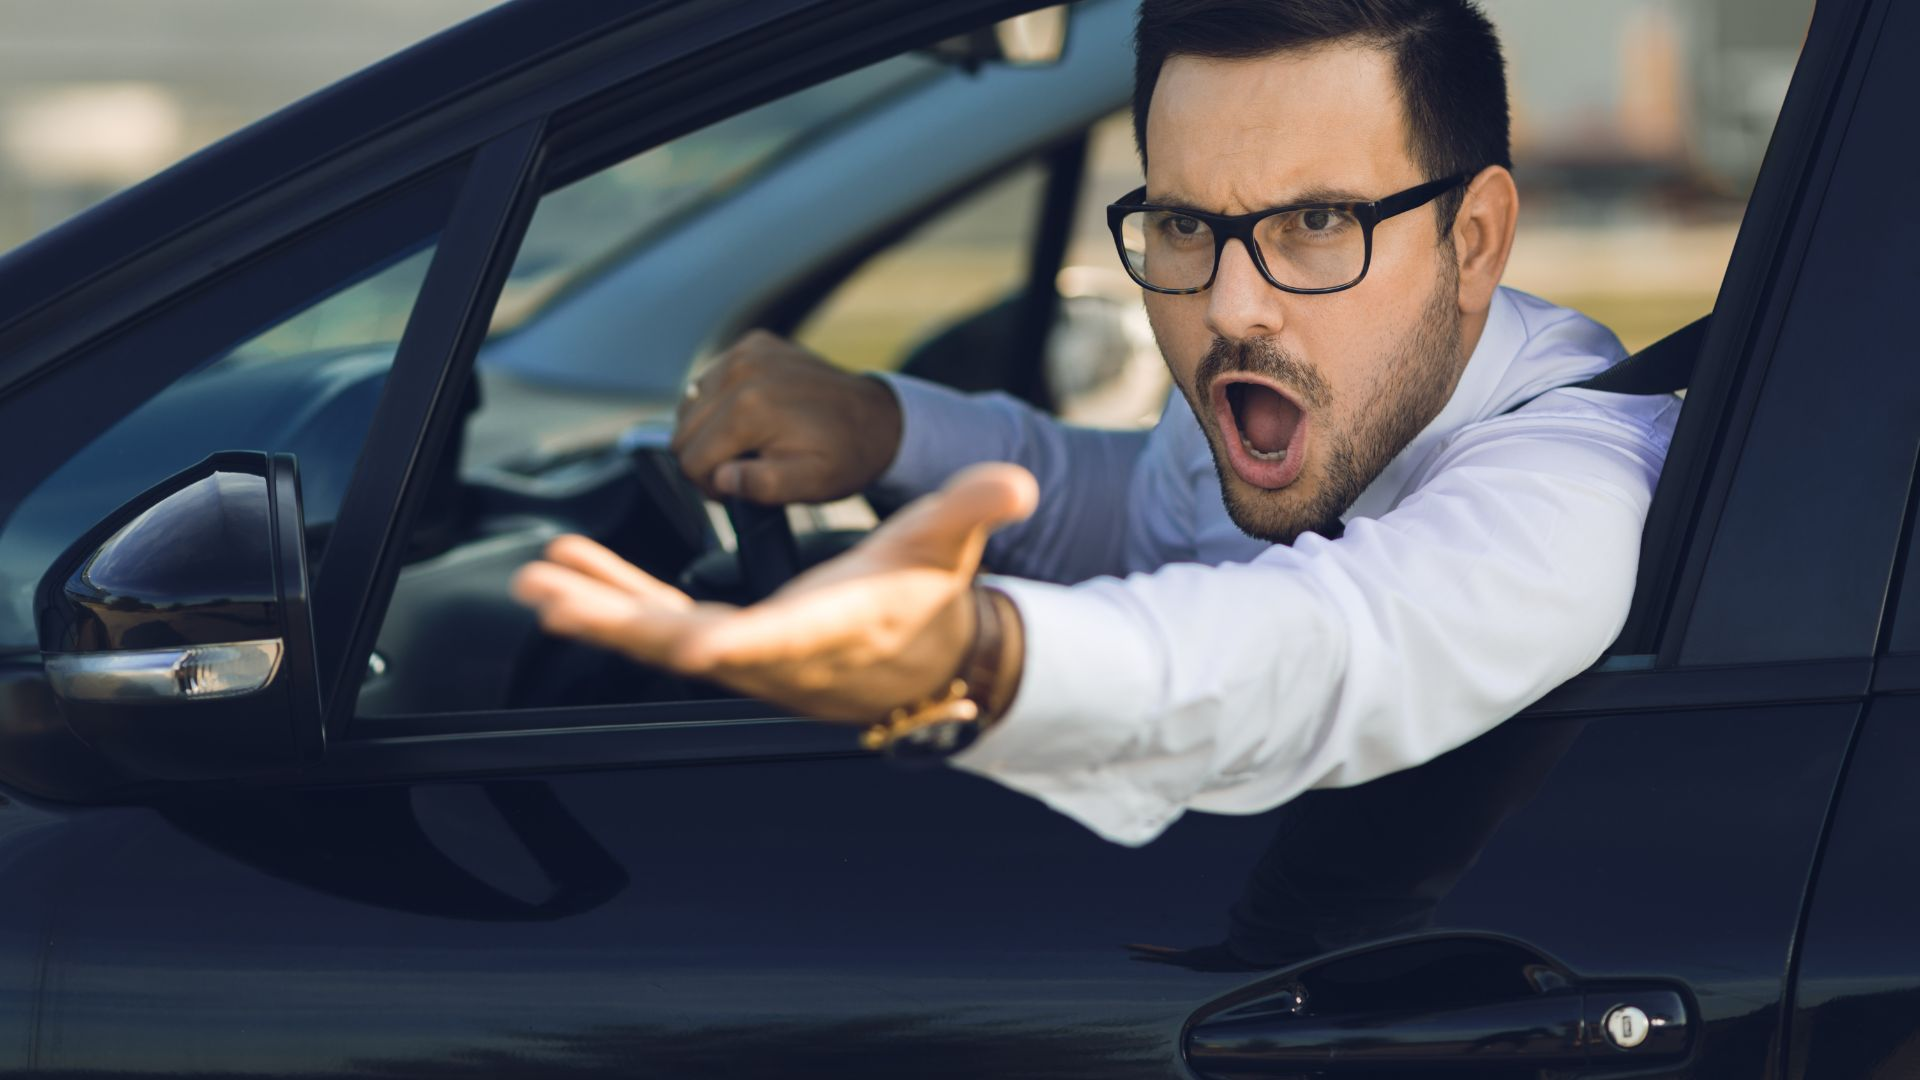 Road rage is getting worse, says RAC survey